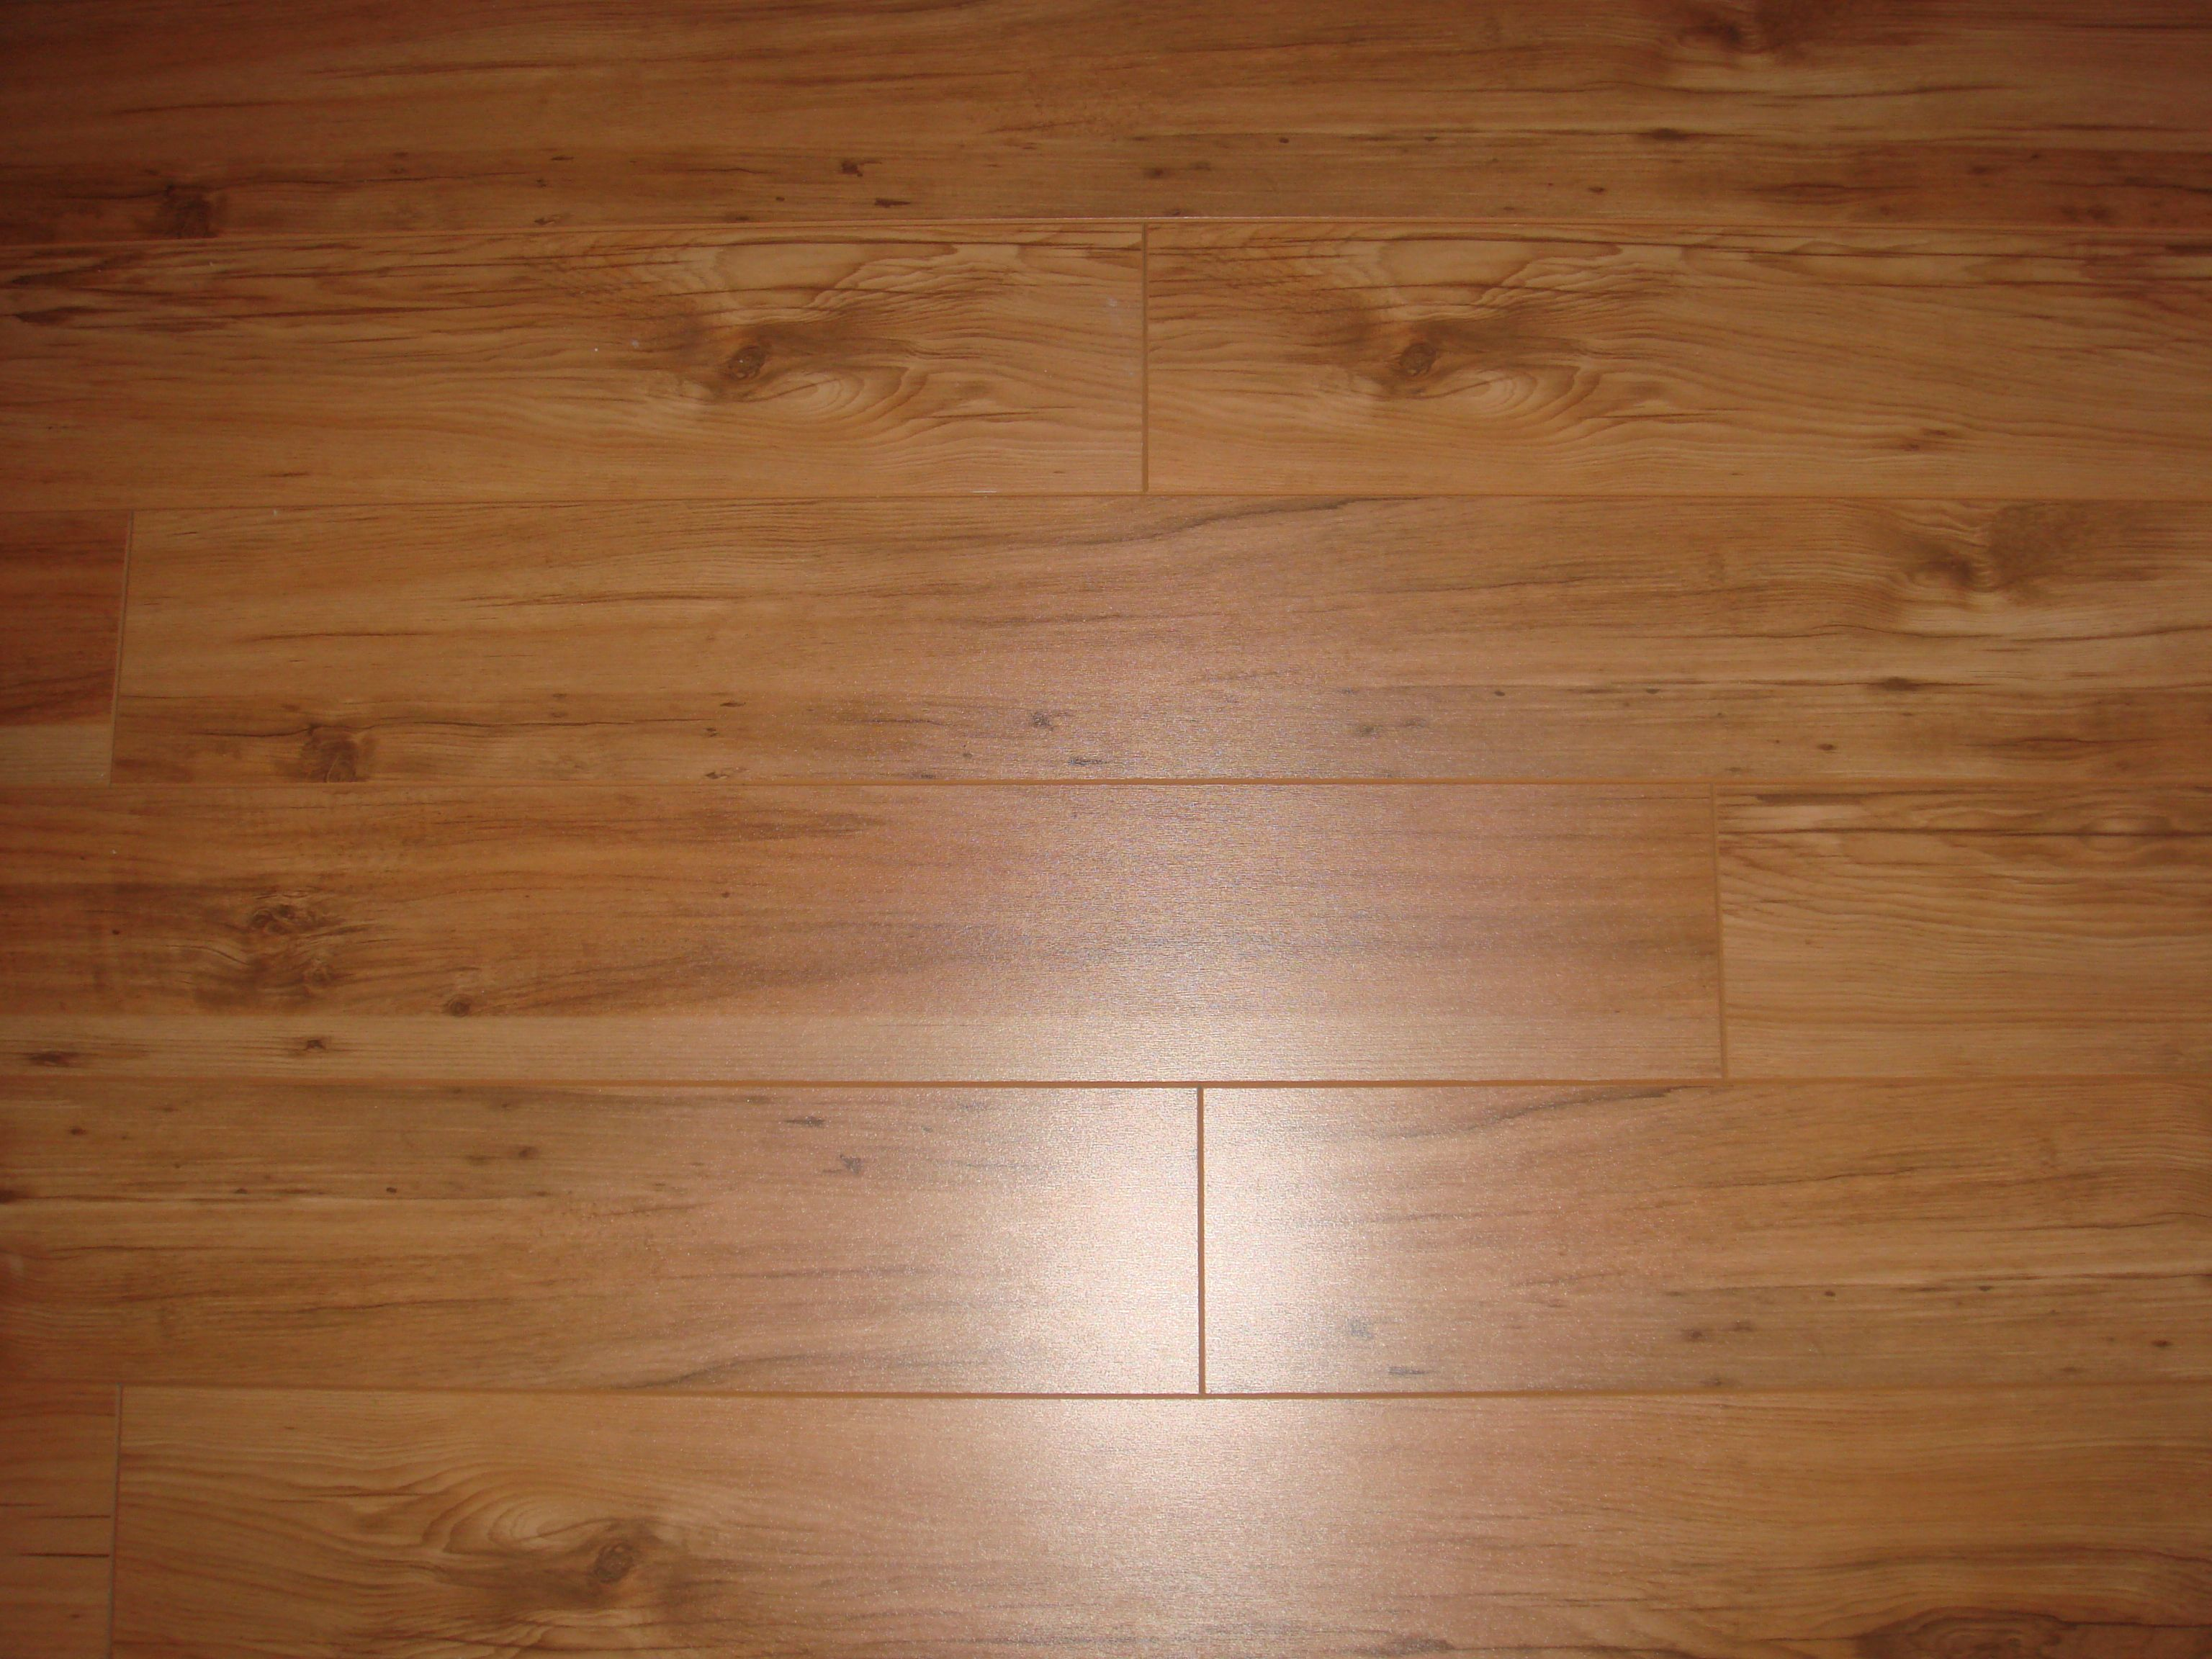 durable laminate flooring is a lowcost option available in styles that mimic stone porcelain tile wood - Wood Tile Flooring